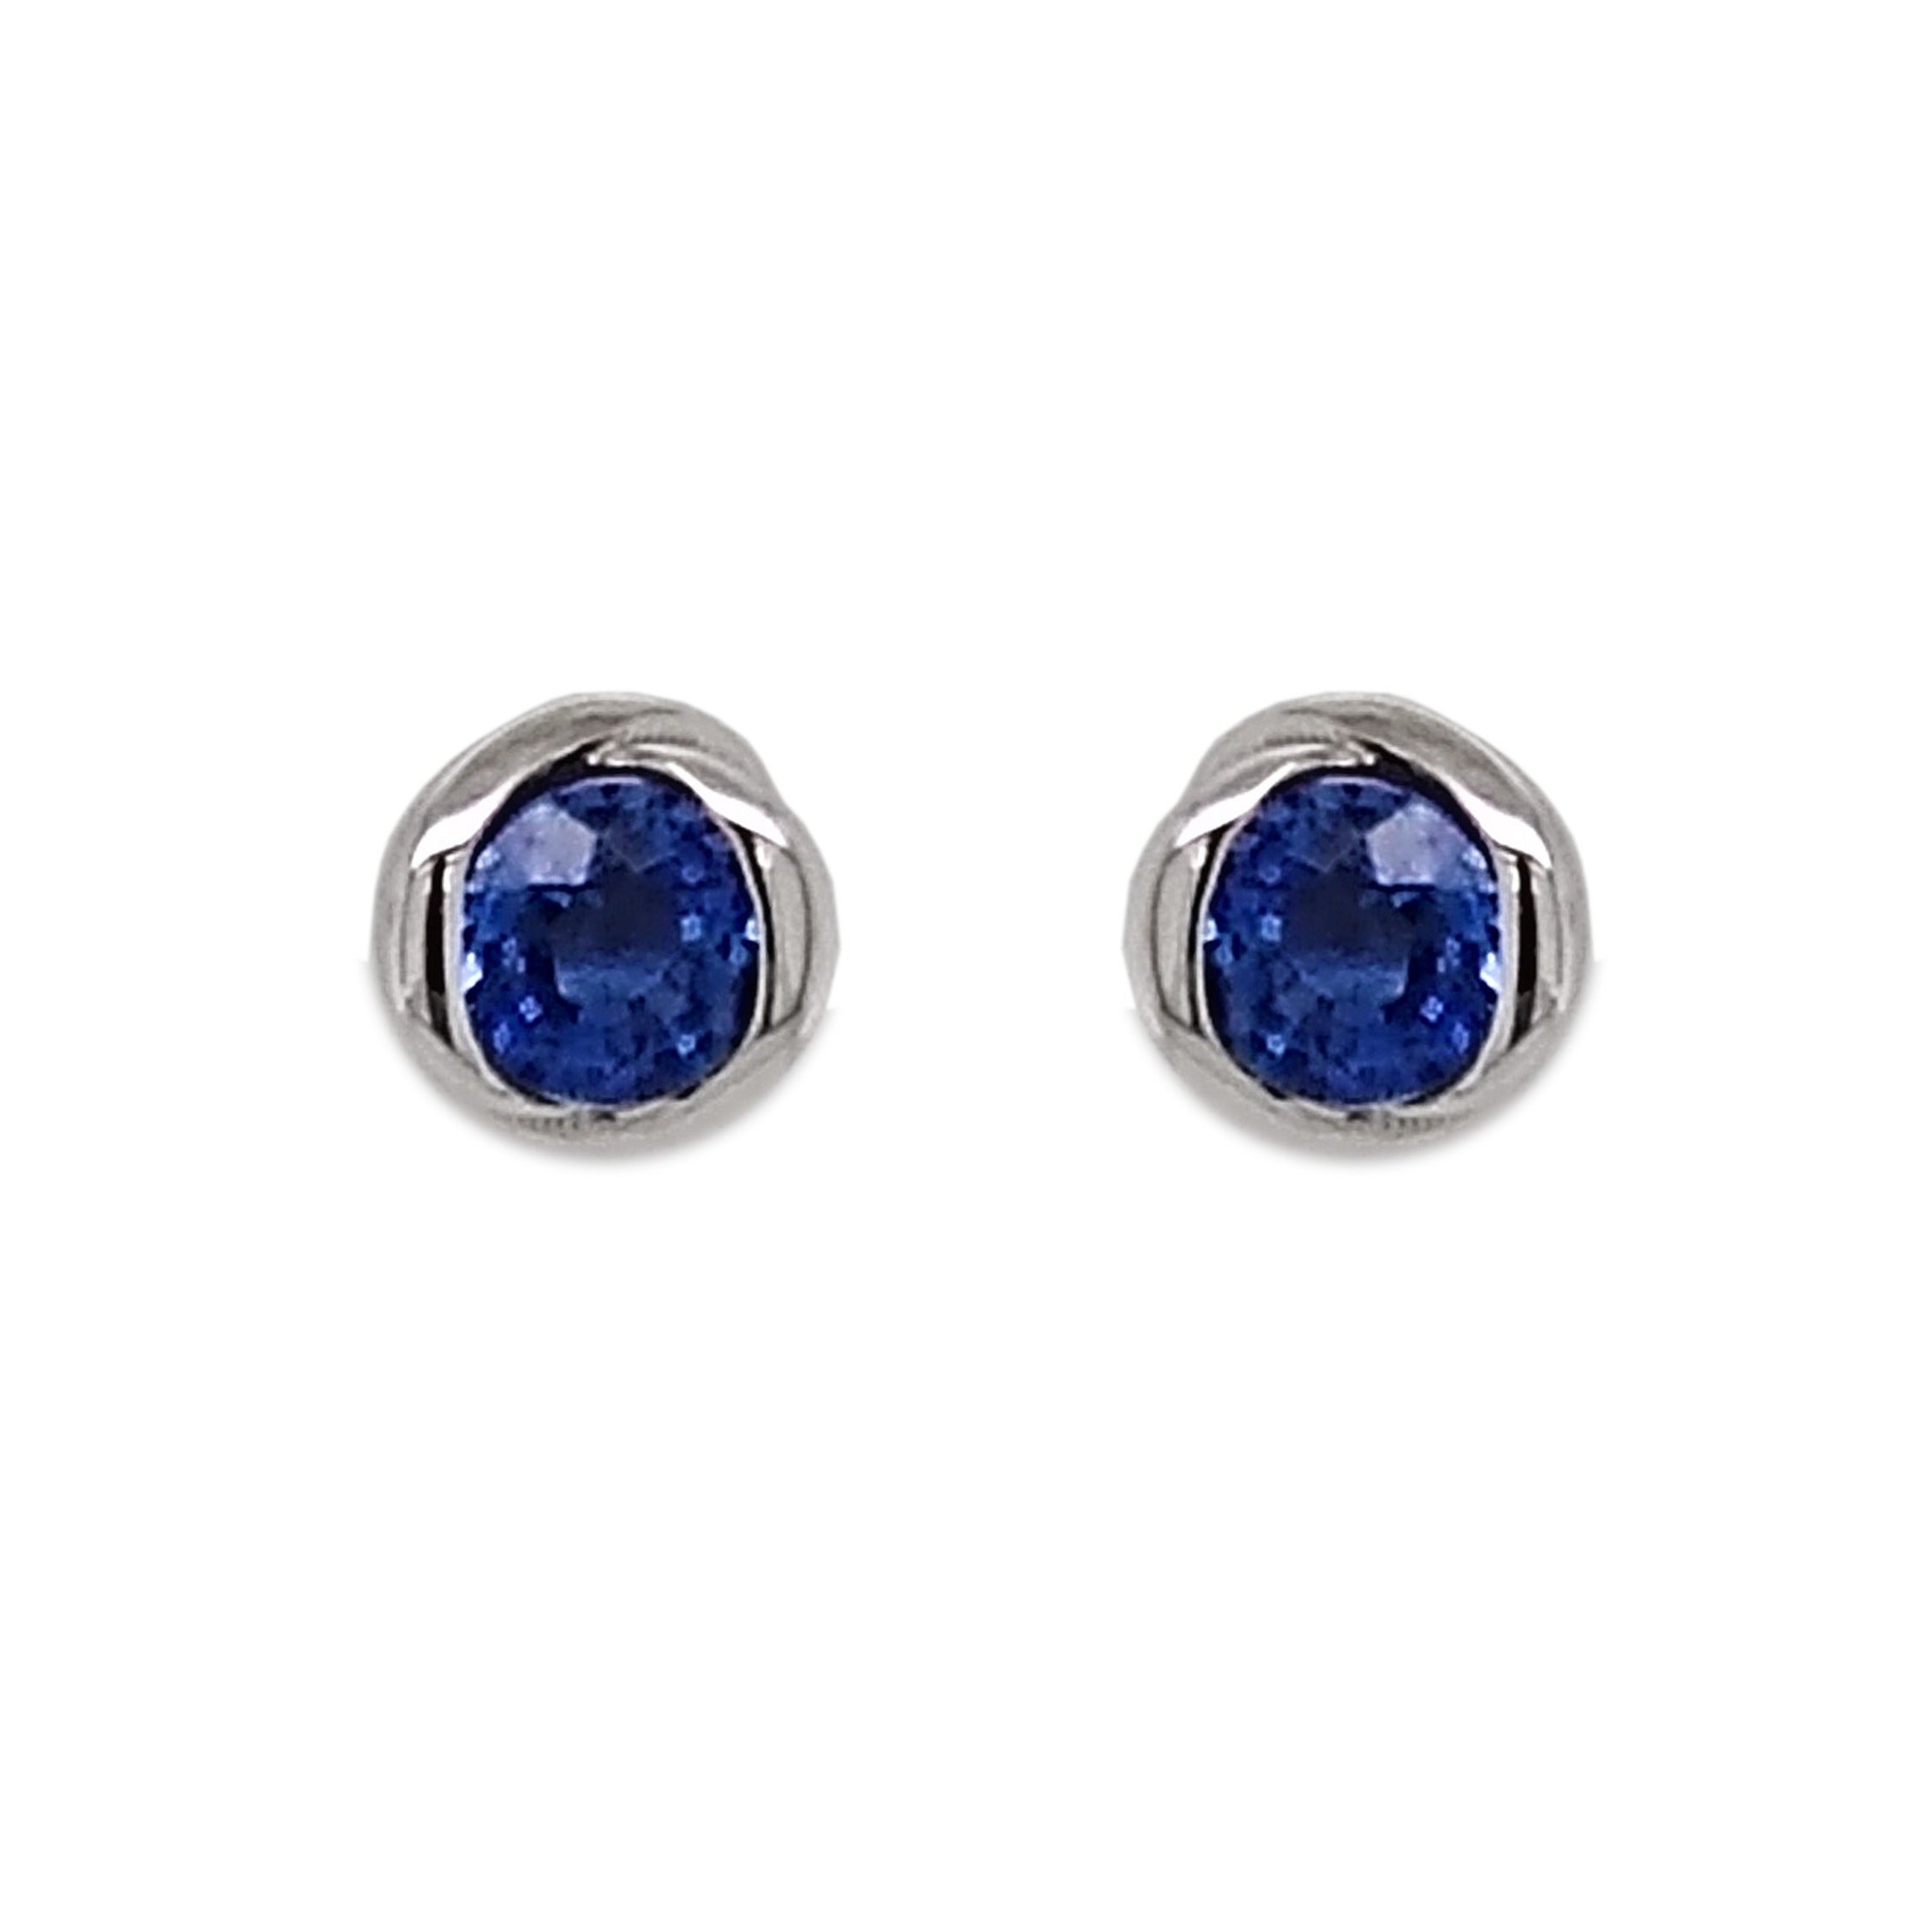 18ct White Gold Sapphire Rosebud Earrings